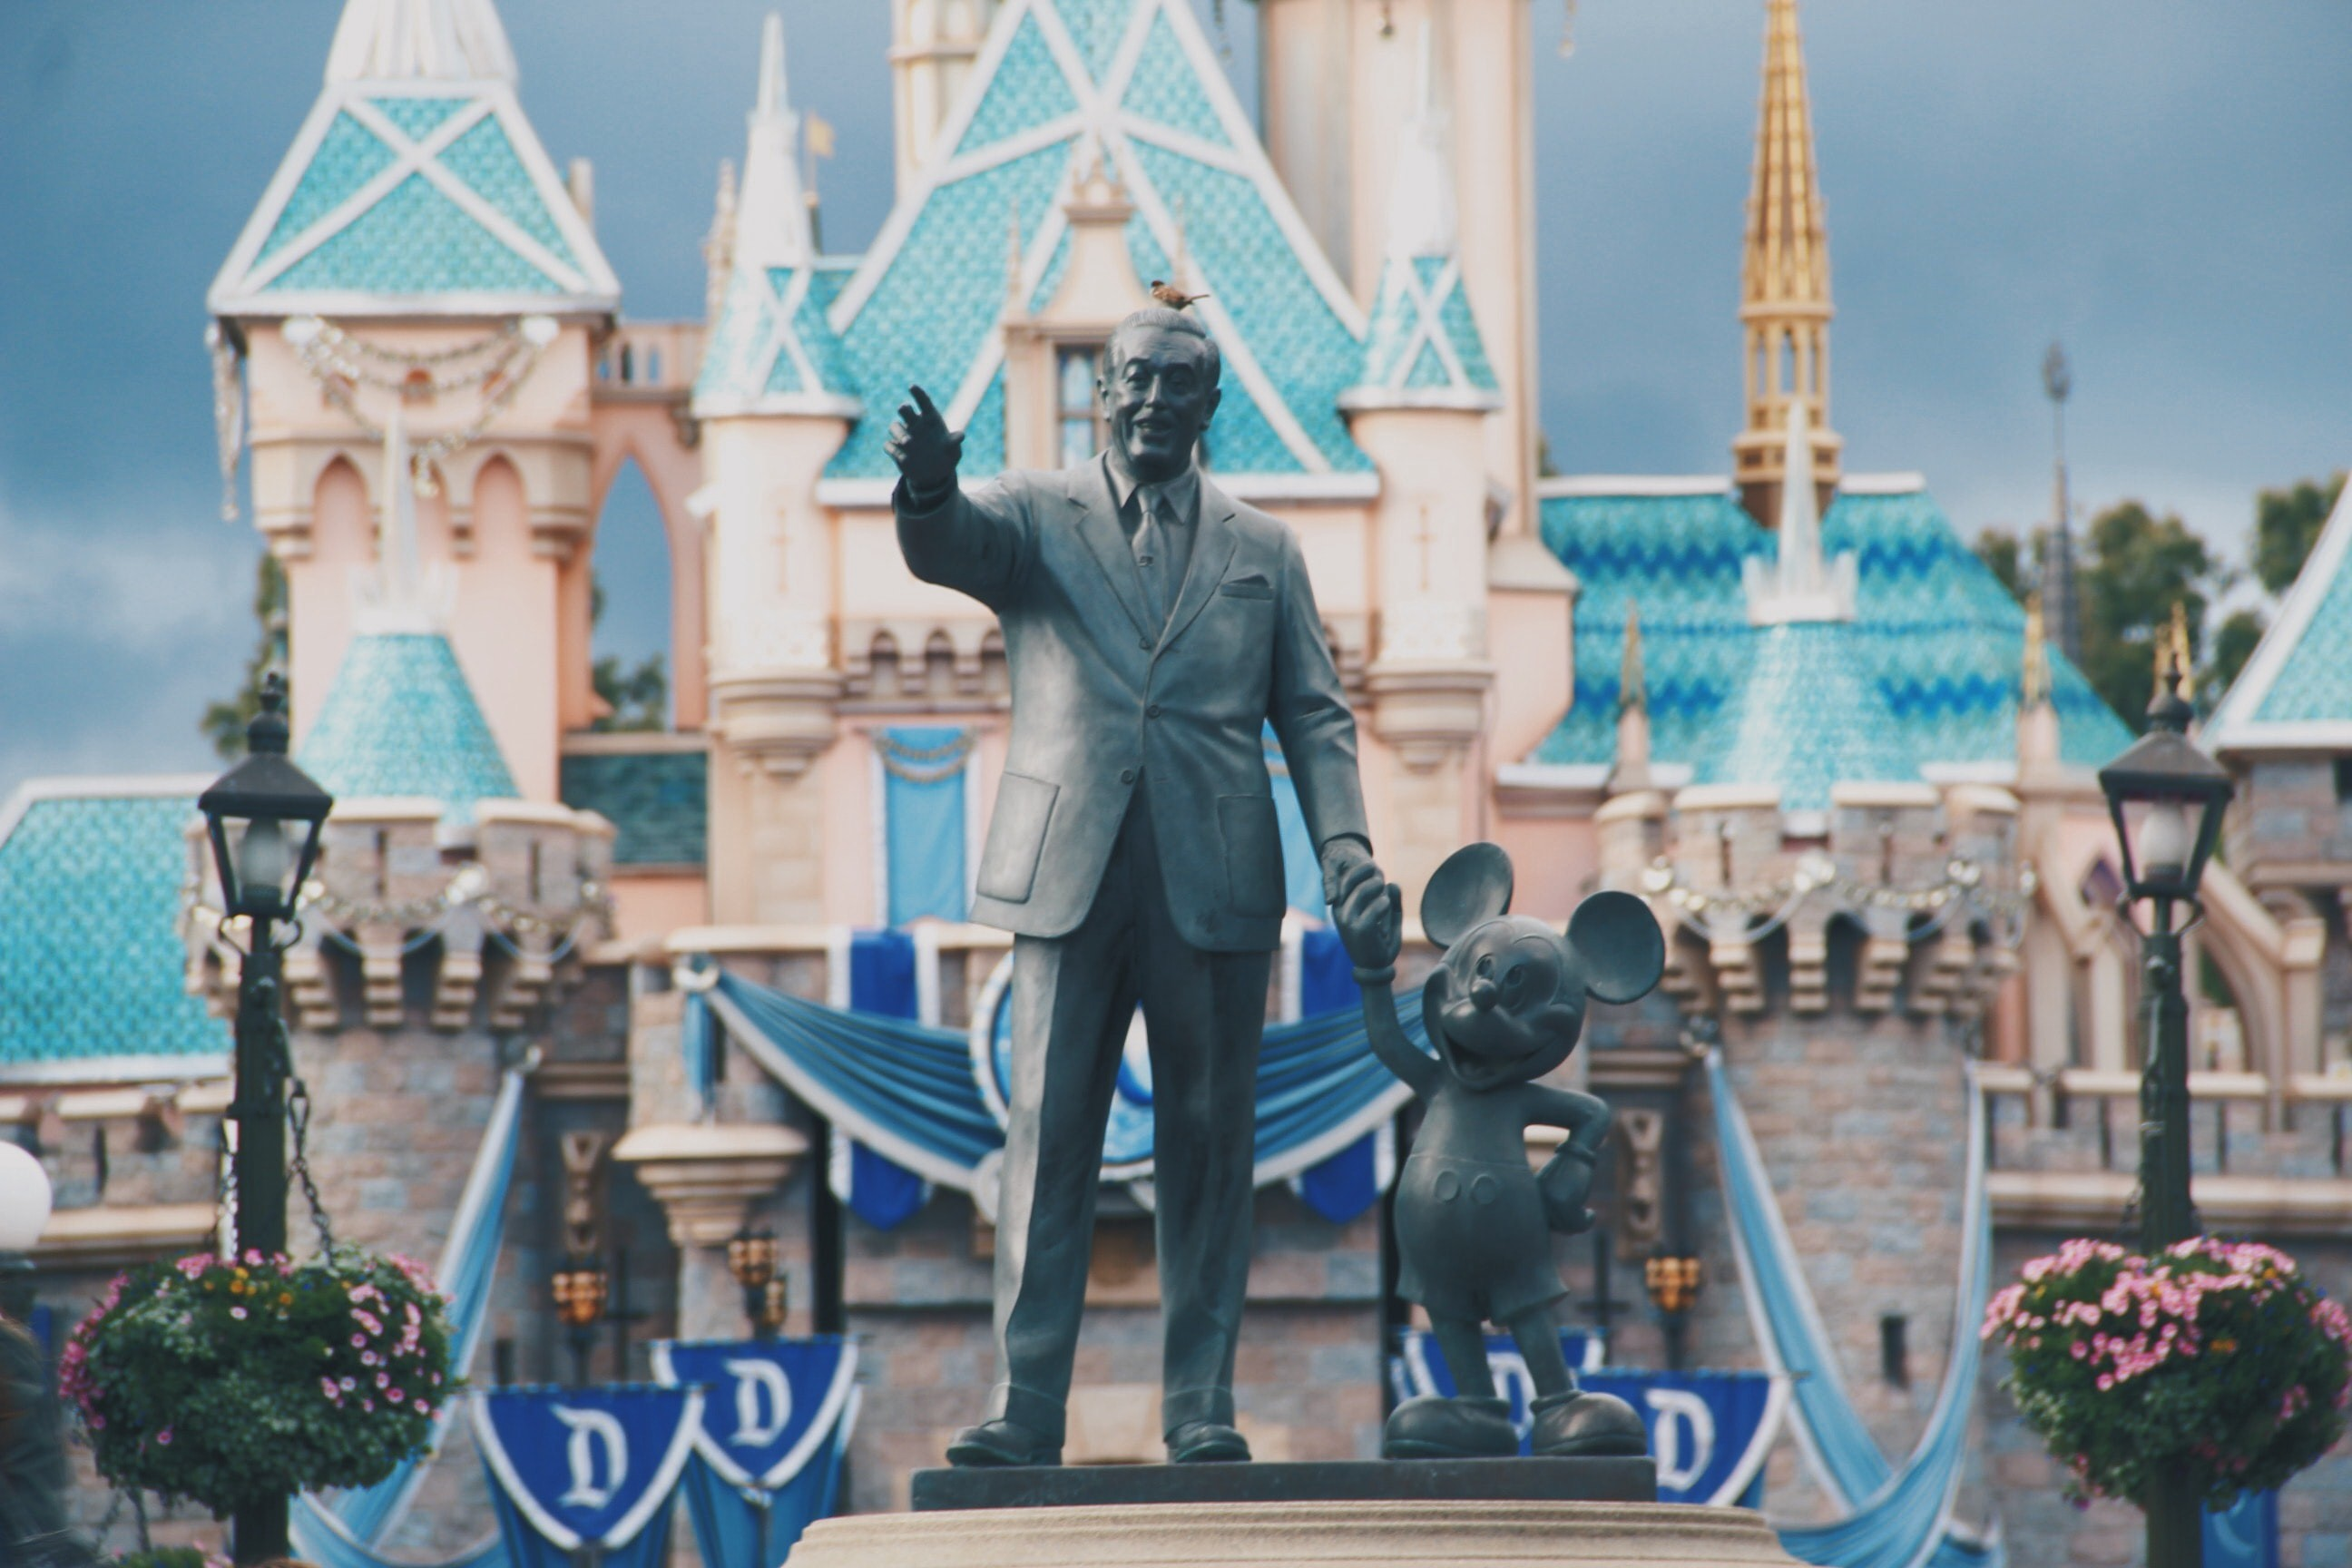 A color photo of a statue of Walt Disney holding hands with Mickey Mouse.